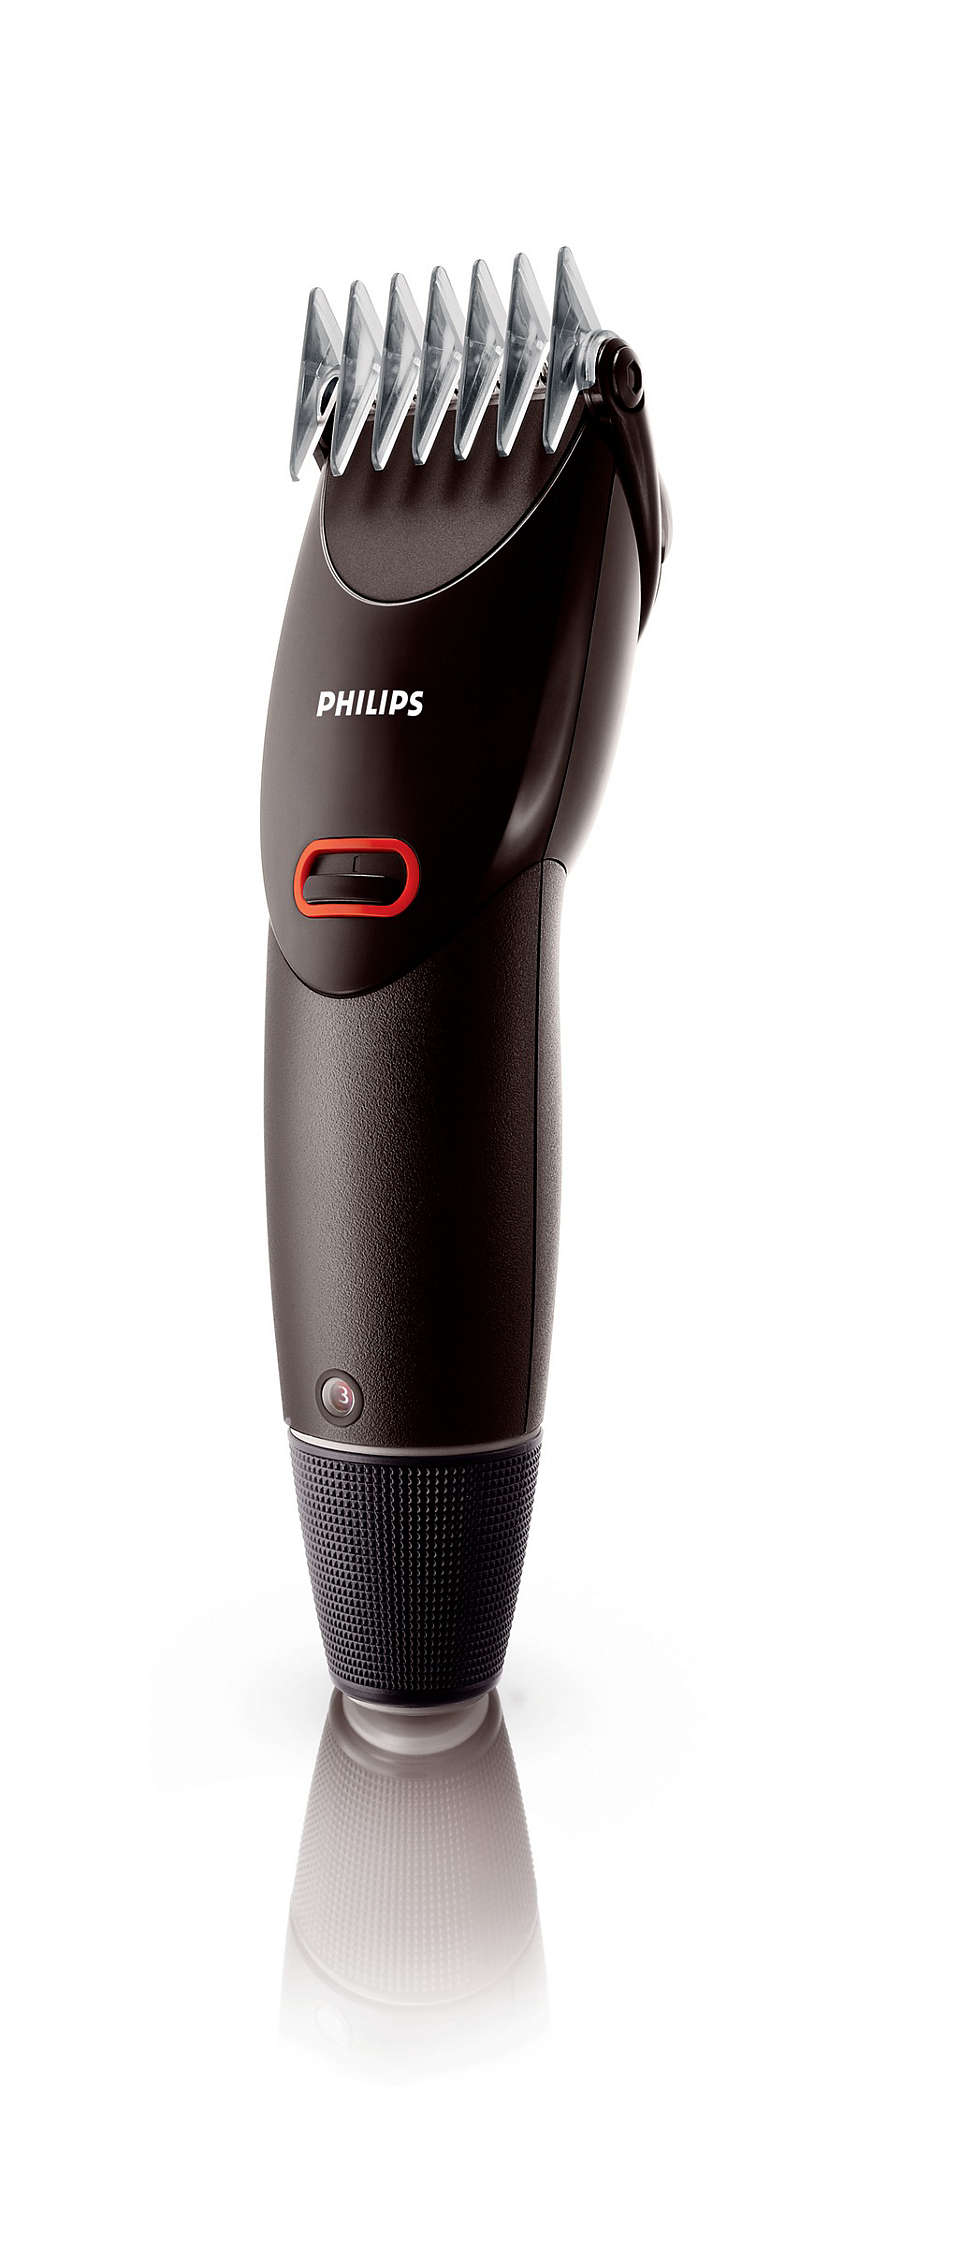 Super easy hair clipper